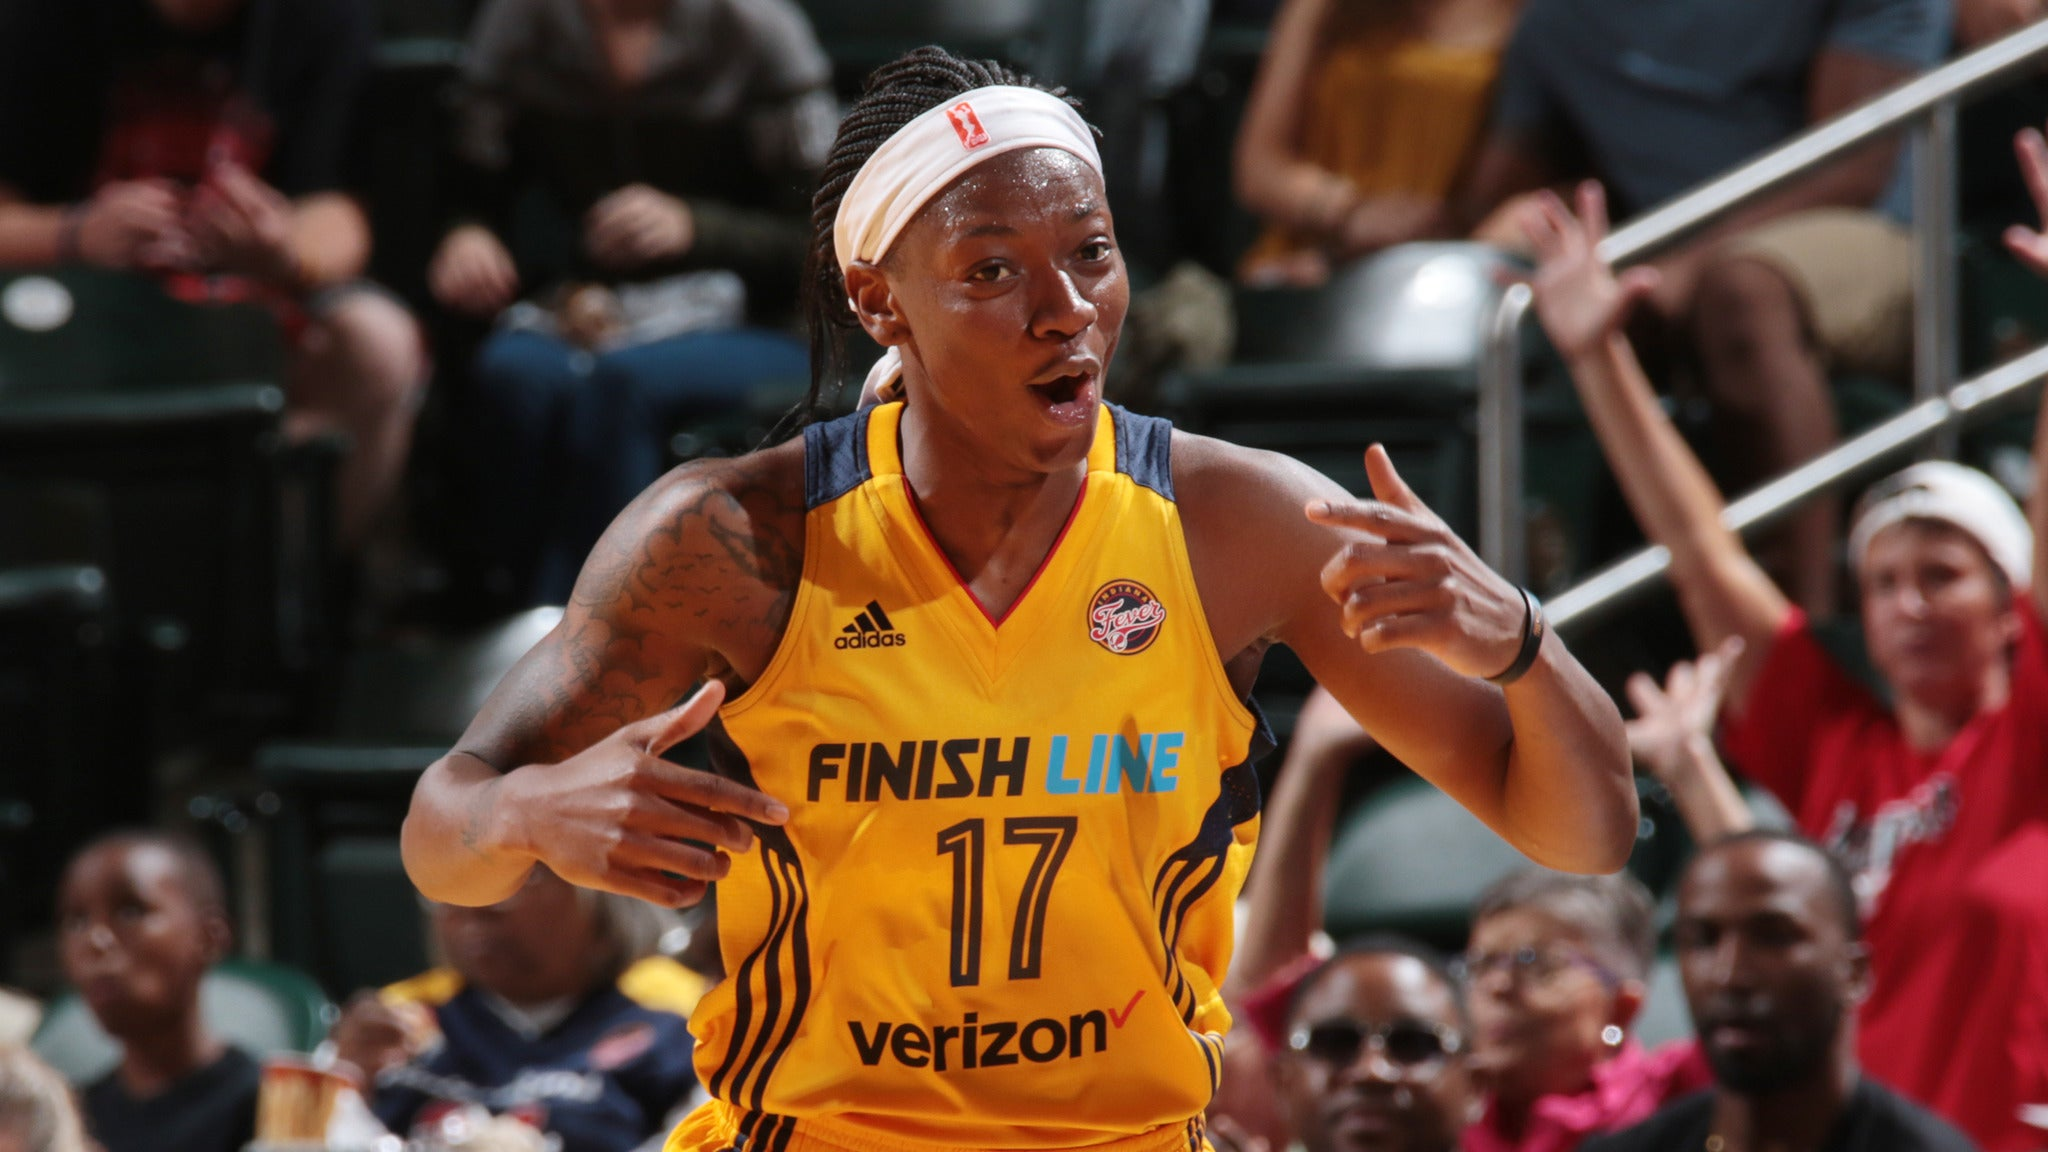 Indiana Fever vs. Washington Mystics